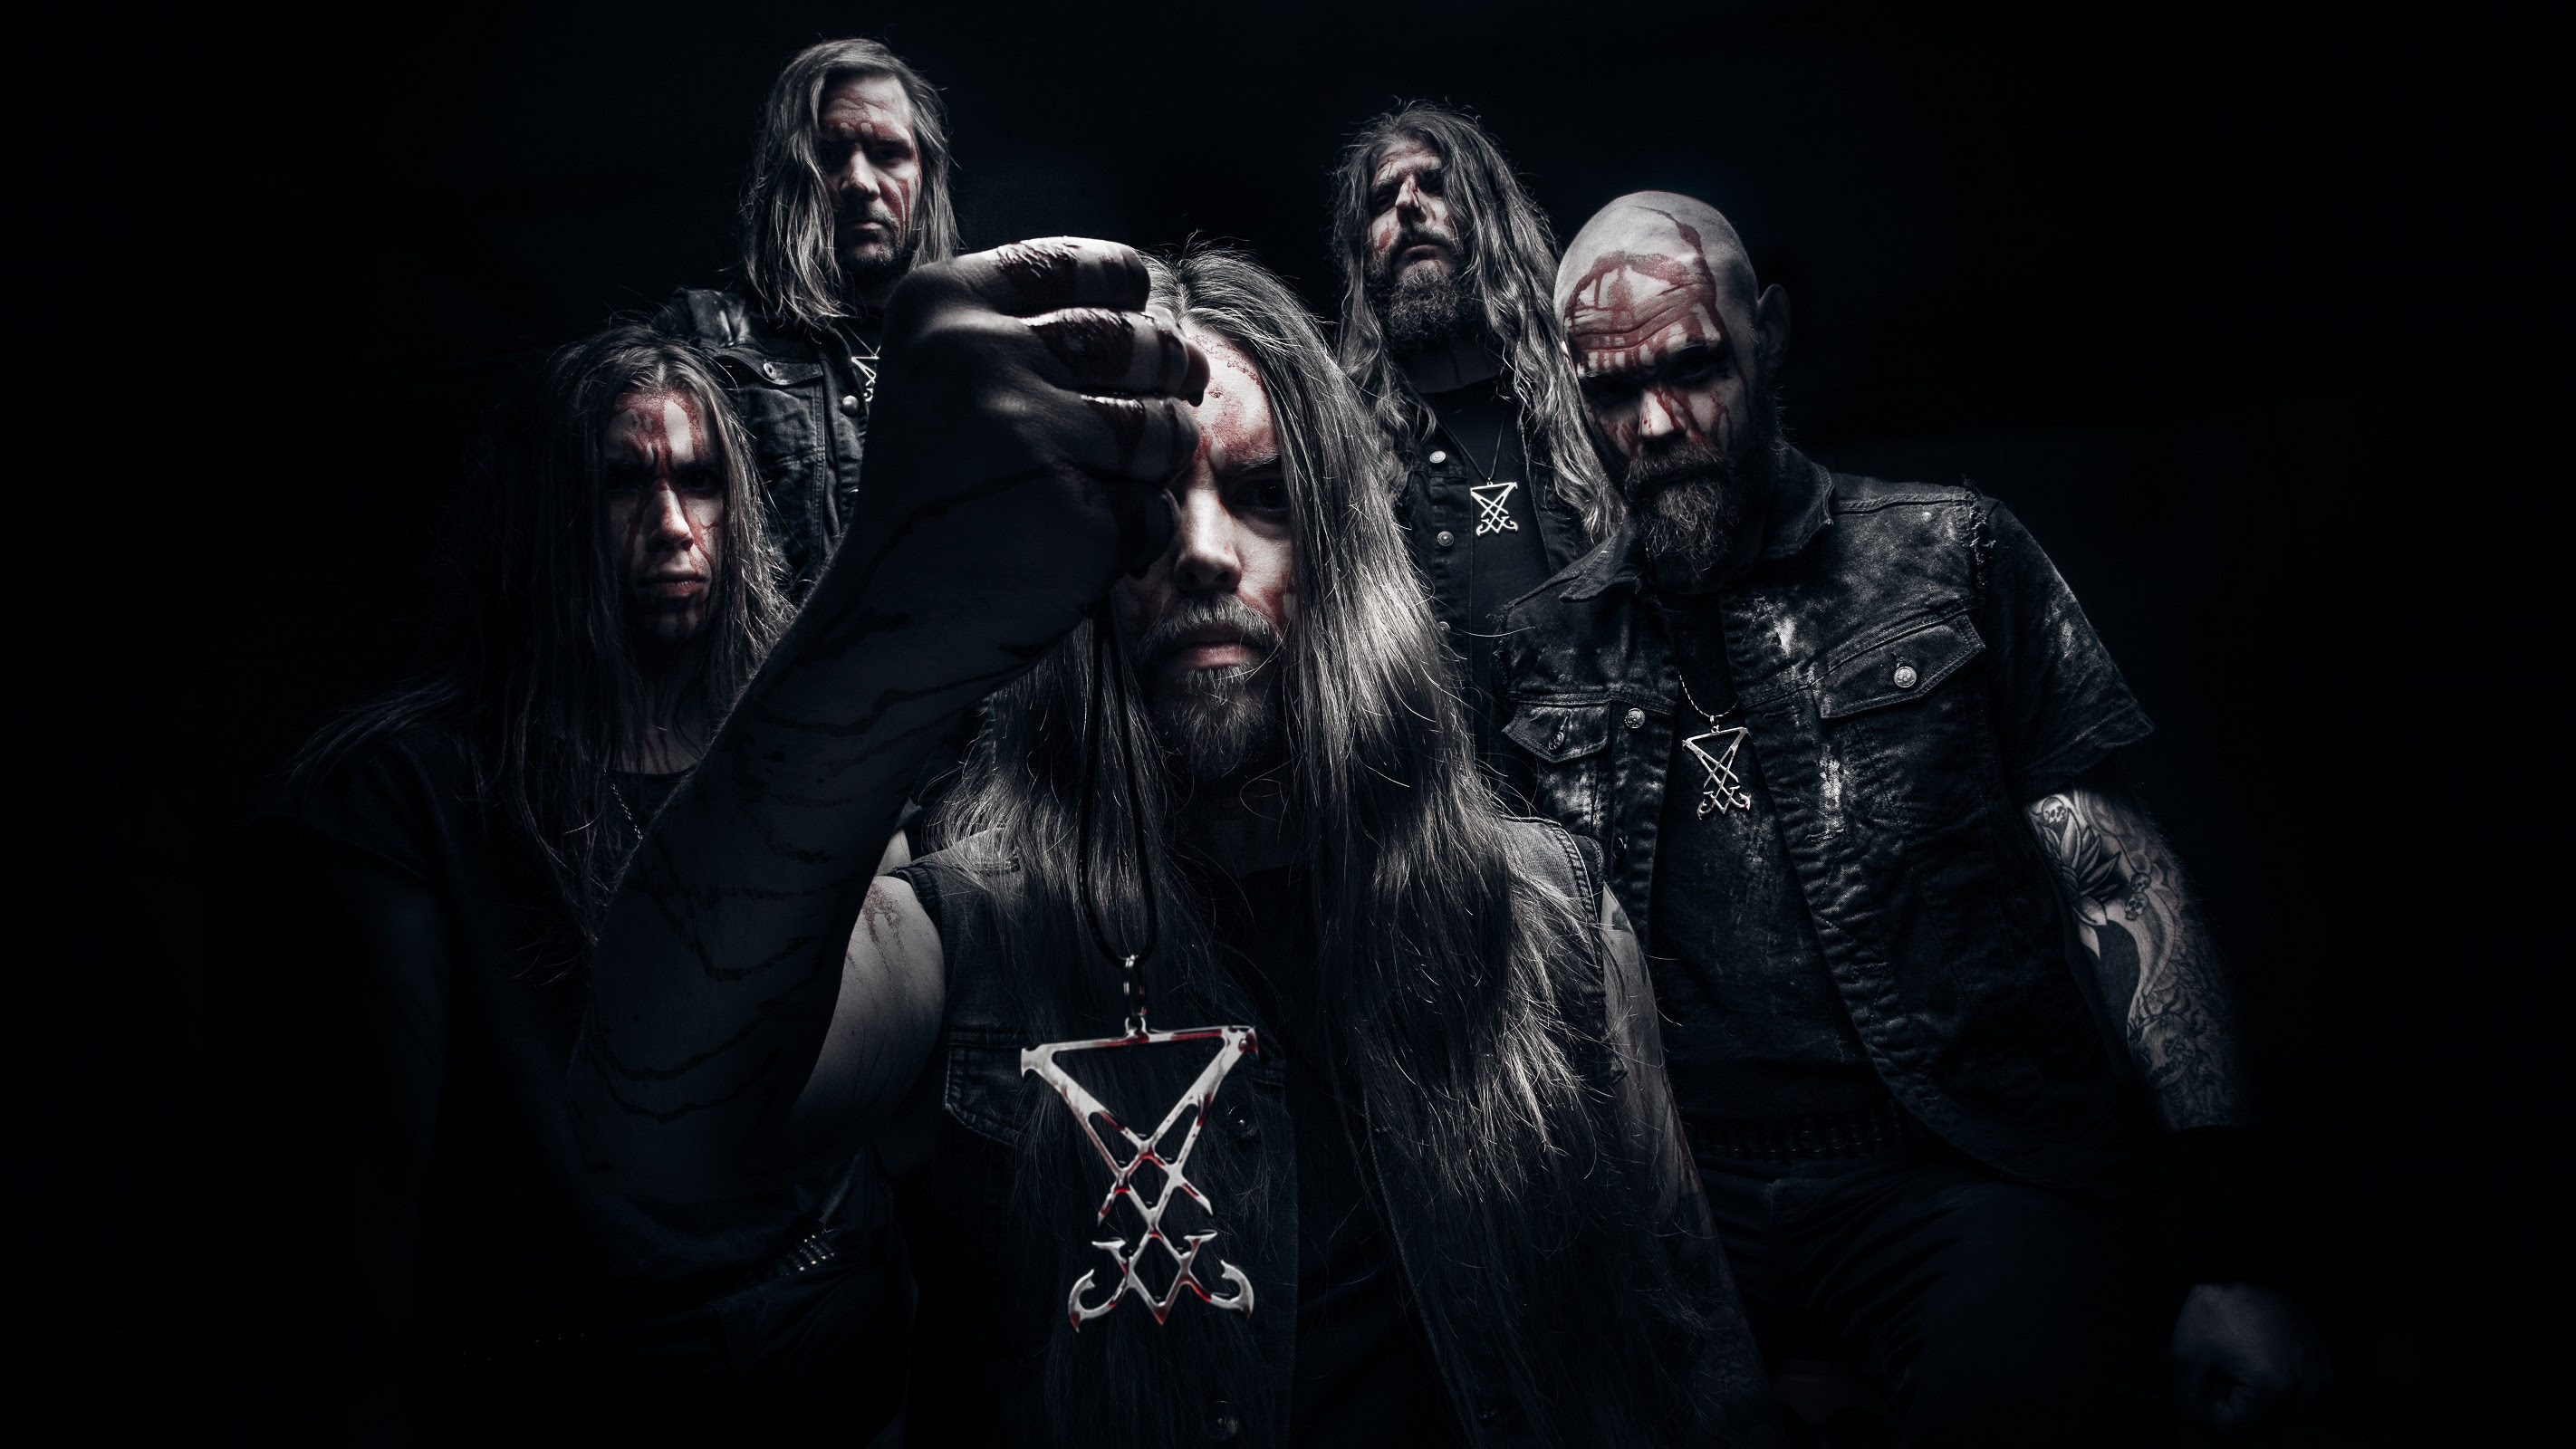 Left to right:Christoffer Andersson (drums), Kristian Roupe (guitars), Thomas Clifford (vocals), Benny Åkeson (bass), Fredrik Nilsson (guitars)